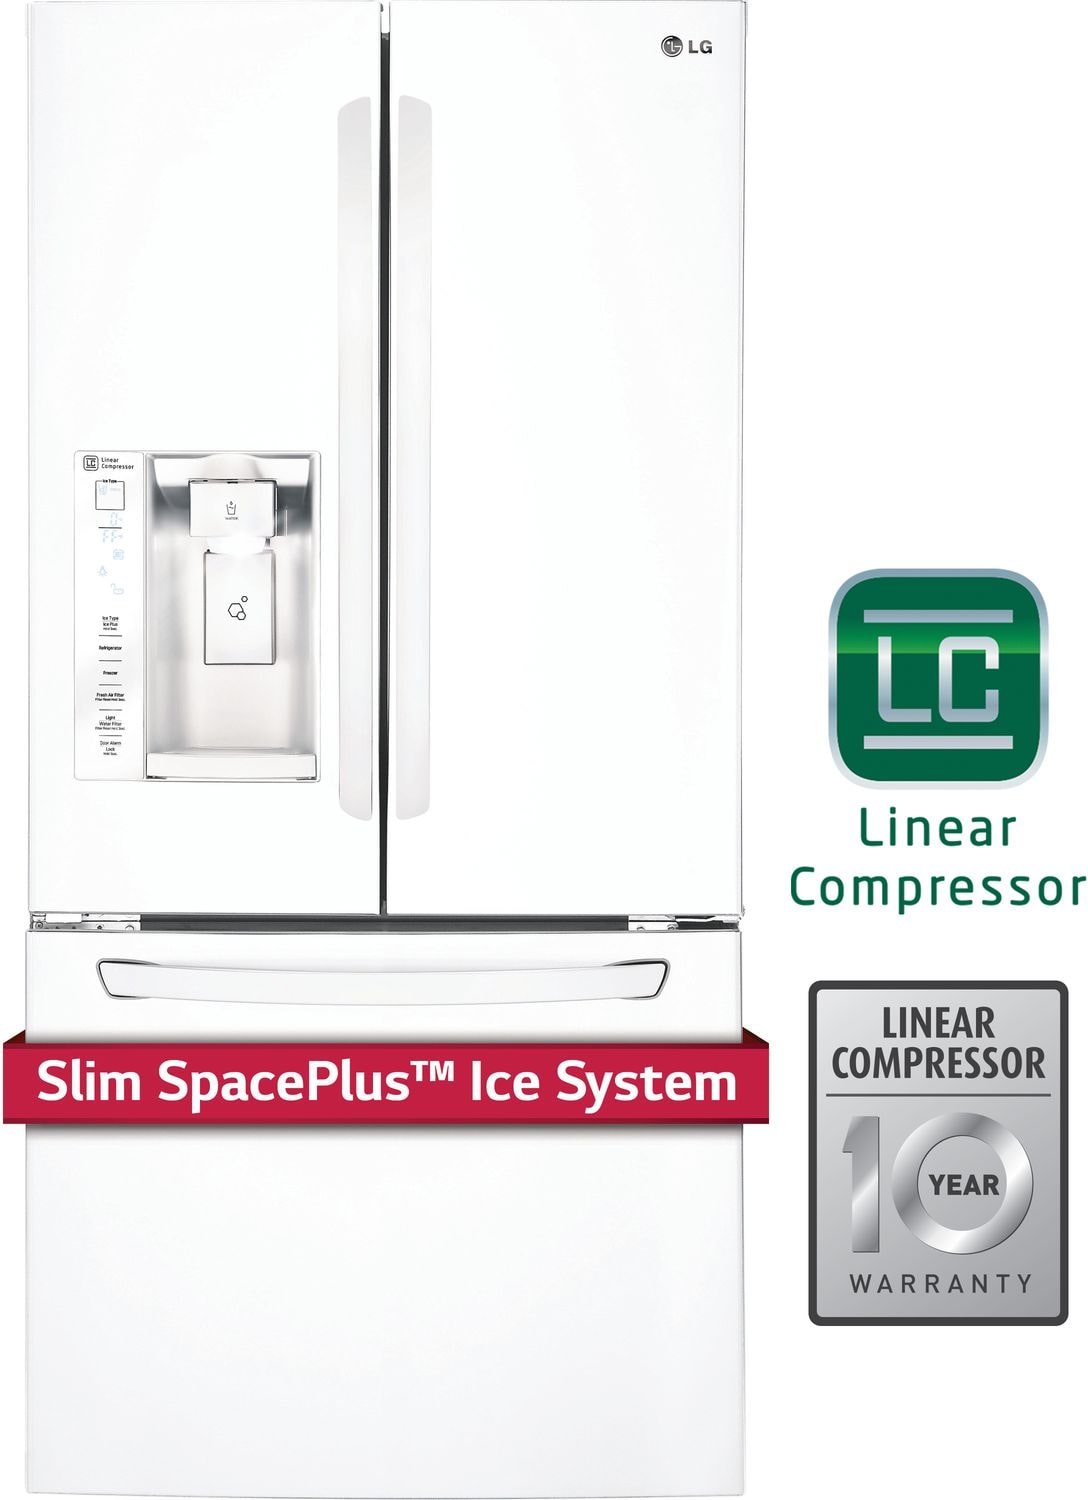 Refrigerators and Freezers - LG White French Door Refrigerator (24 Cu. Ft.) - LFXS24623W